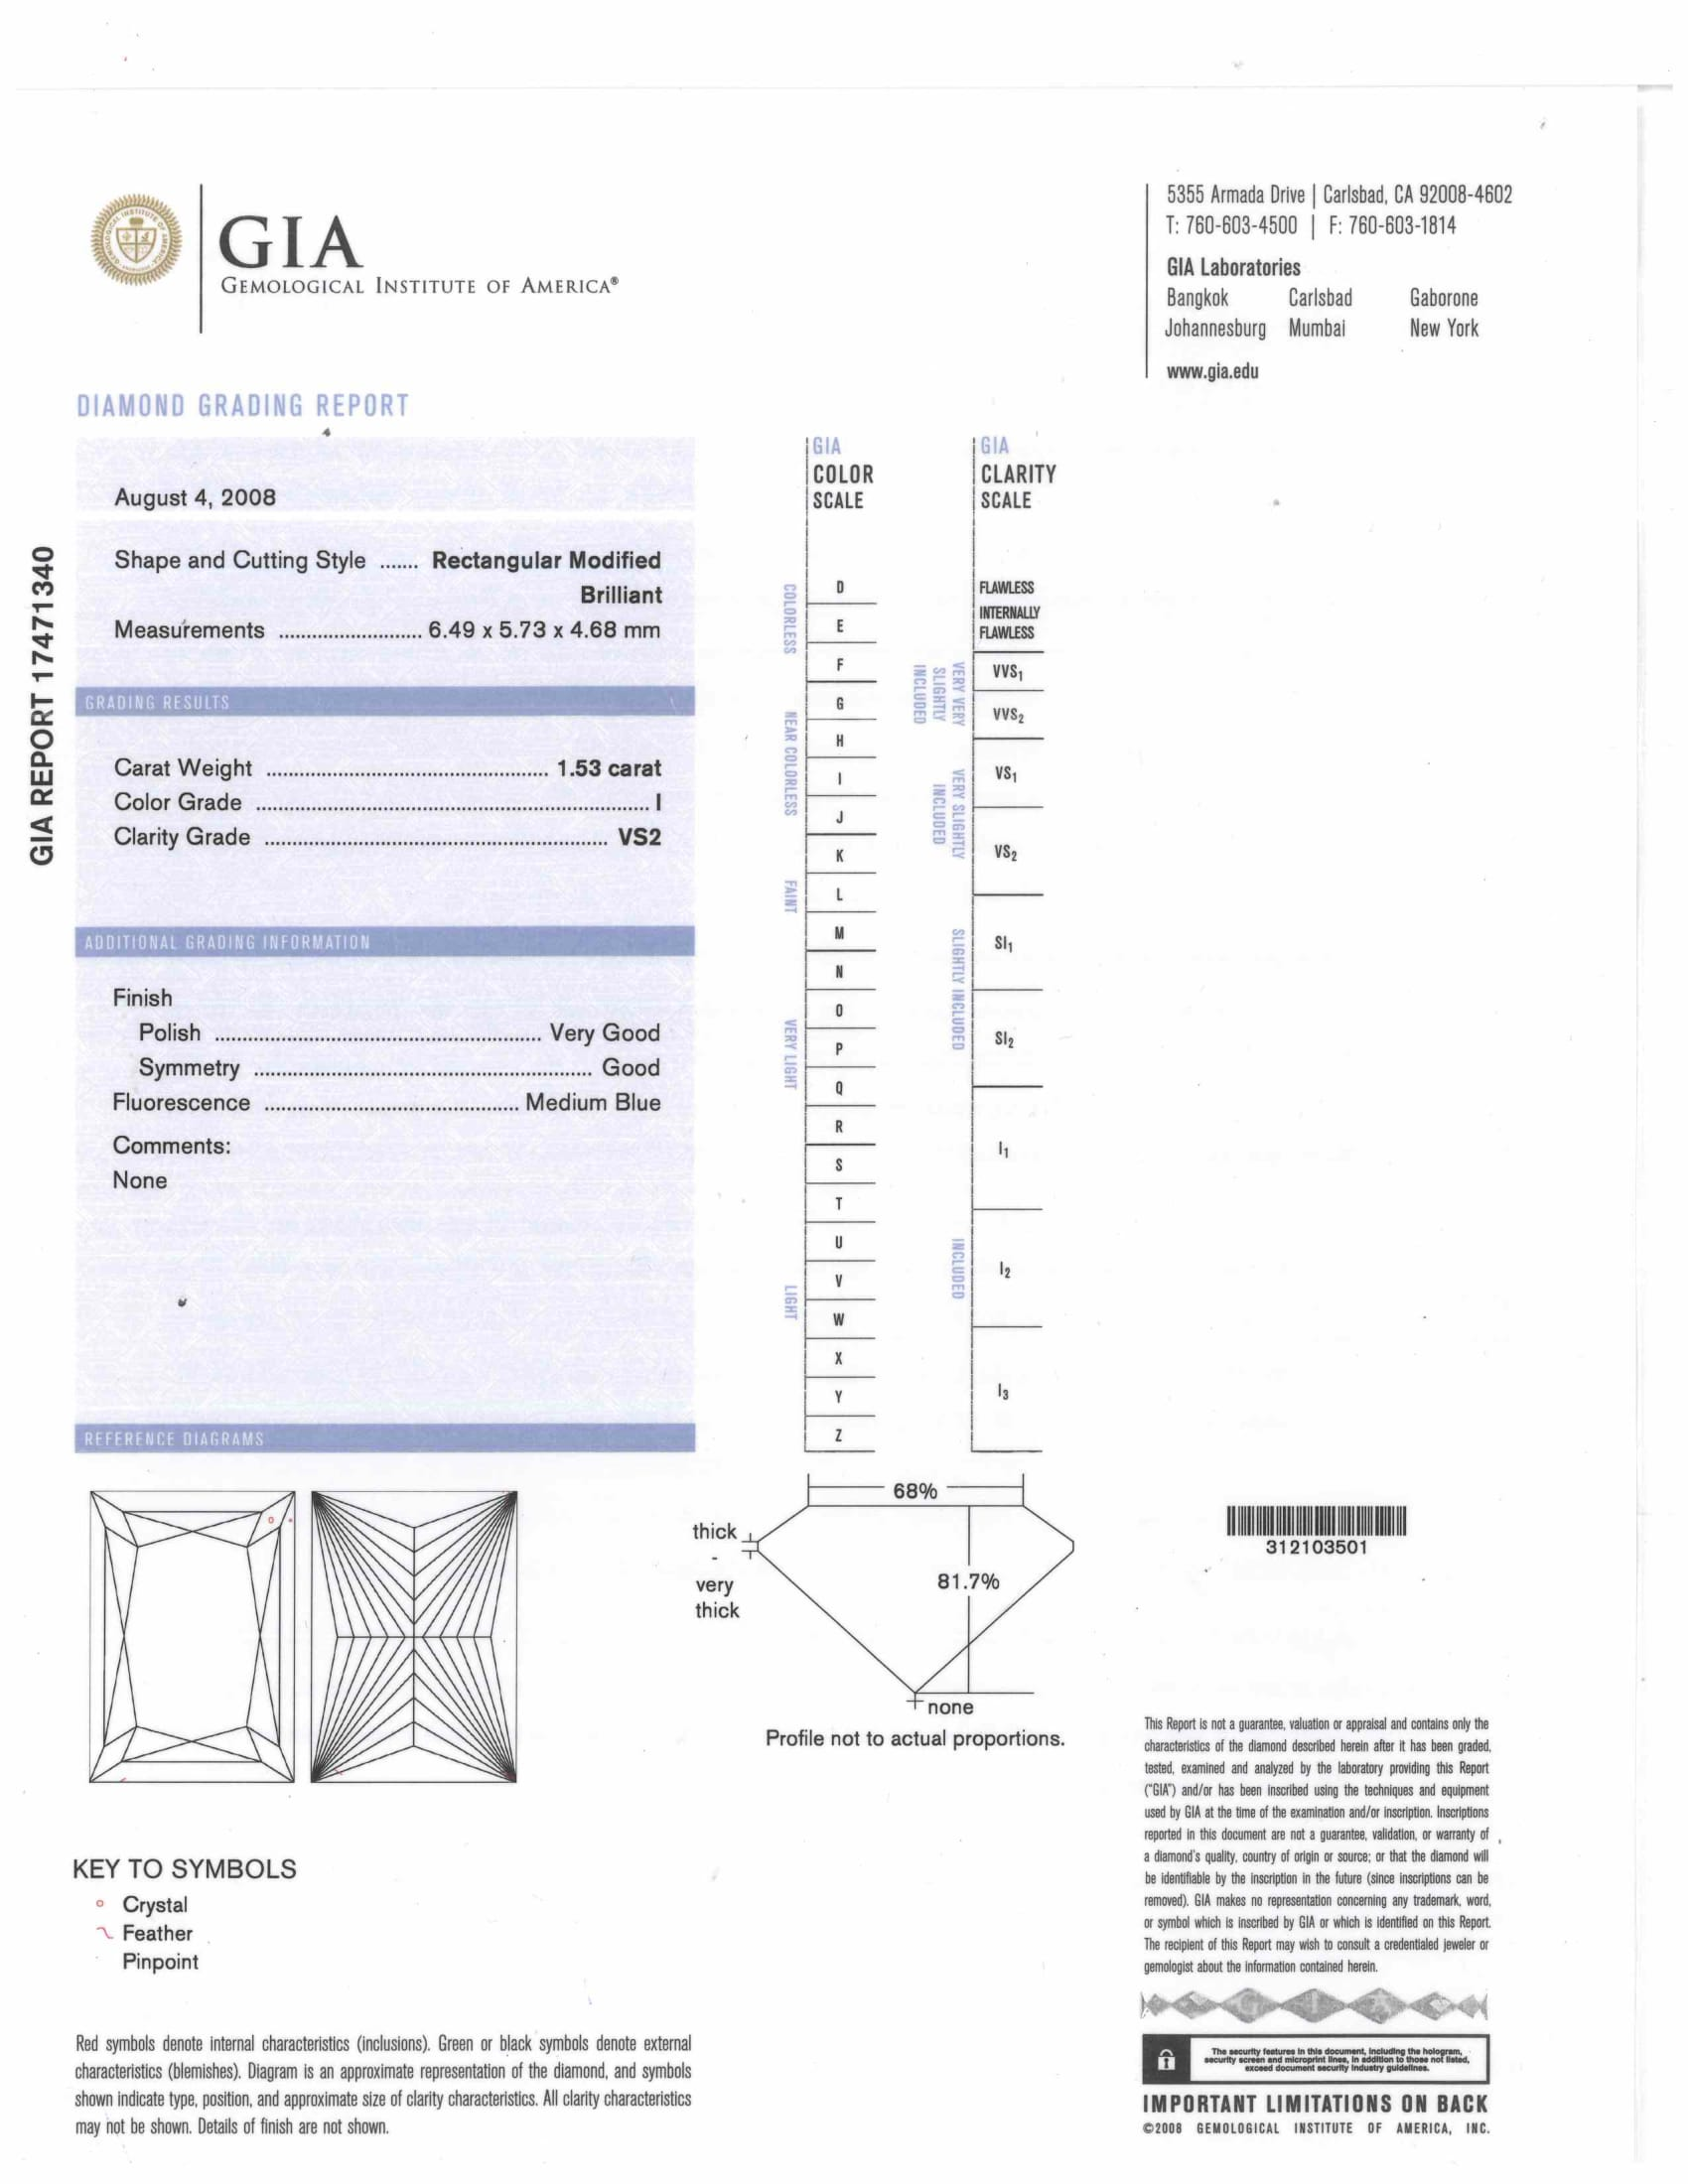 clarity baskan chart grade co for diamond diamonds idai central grading